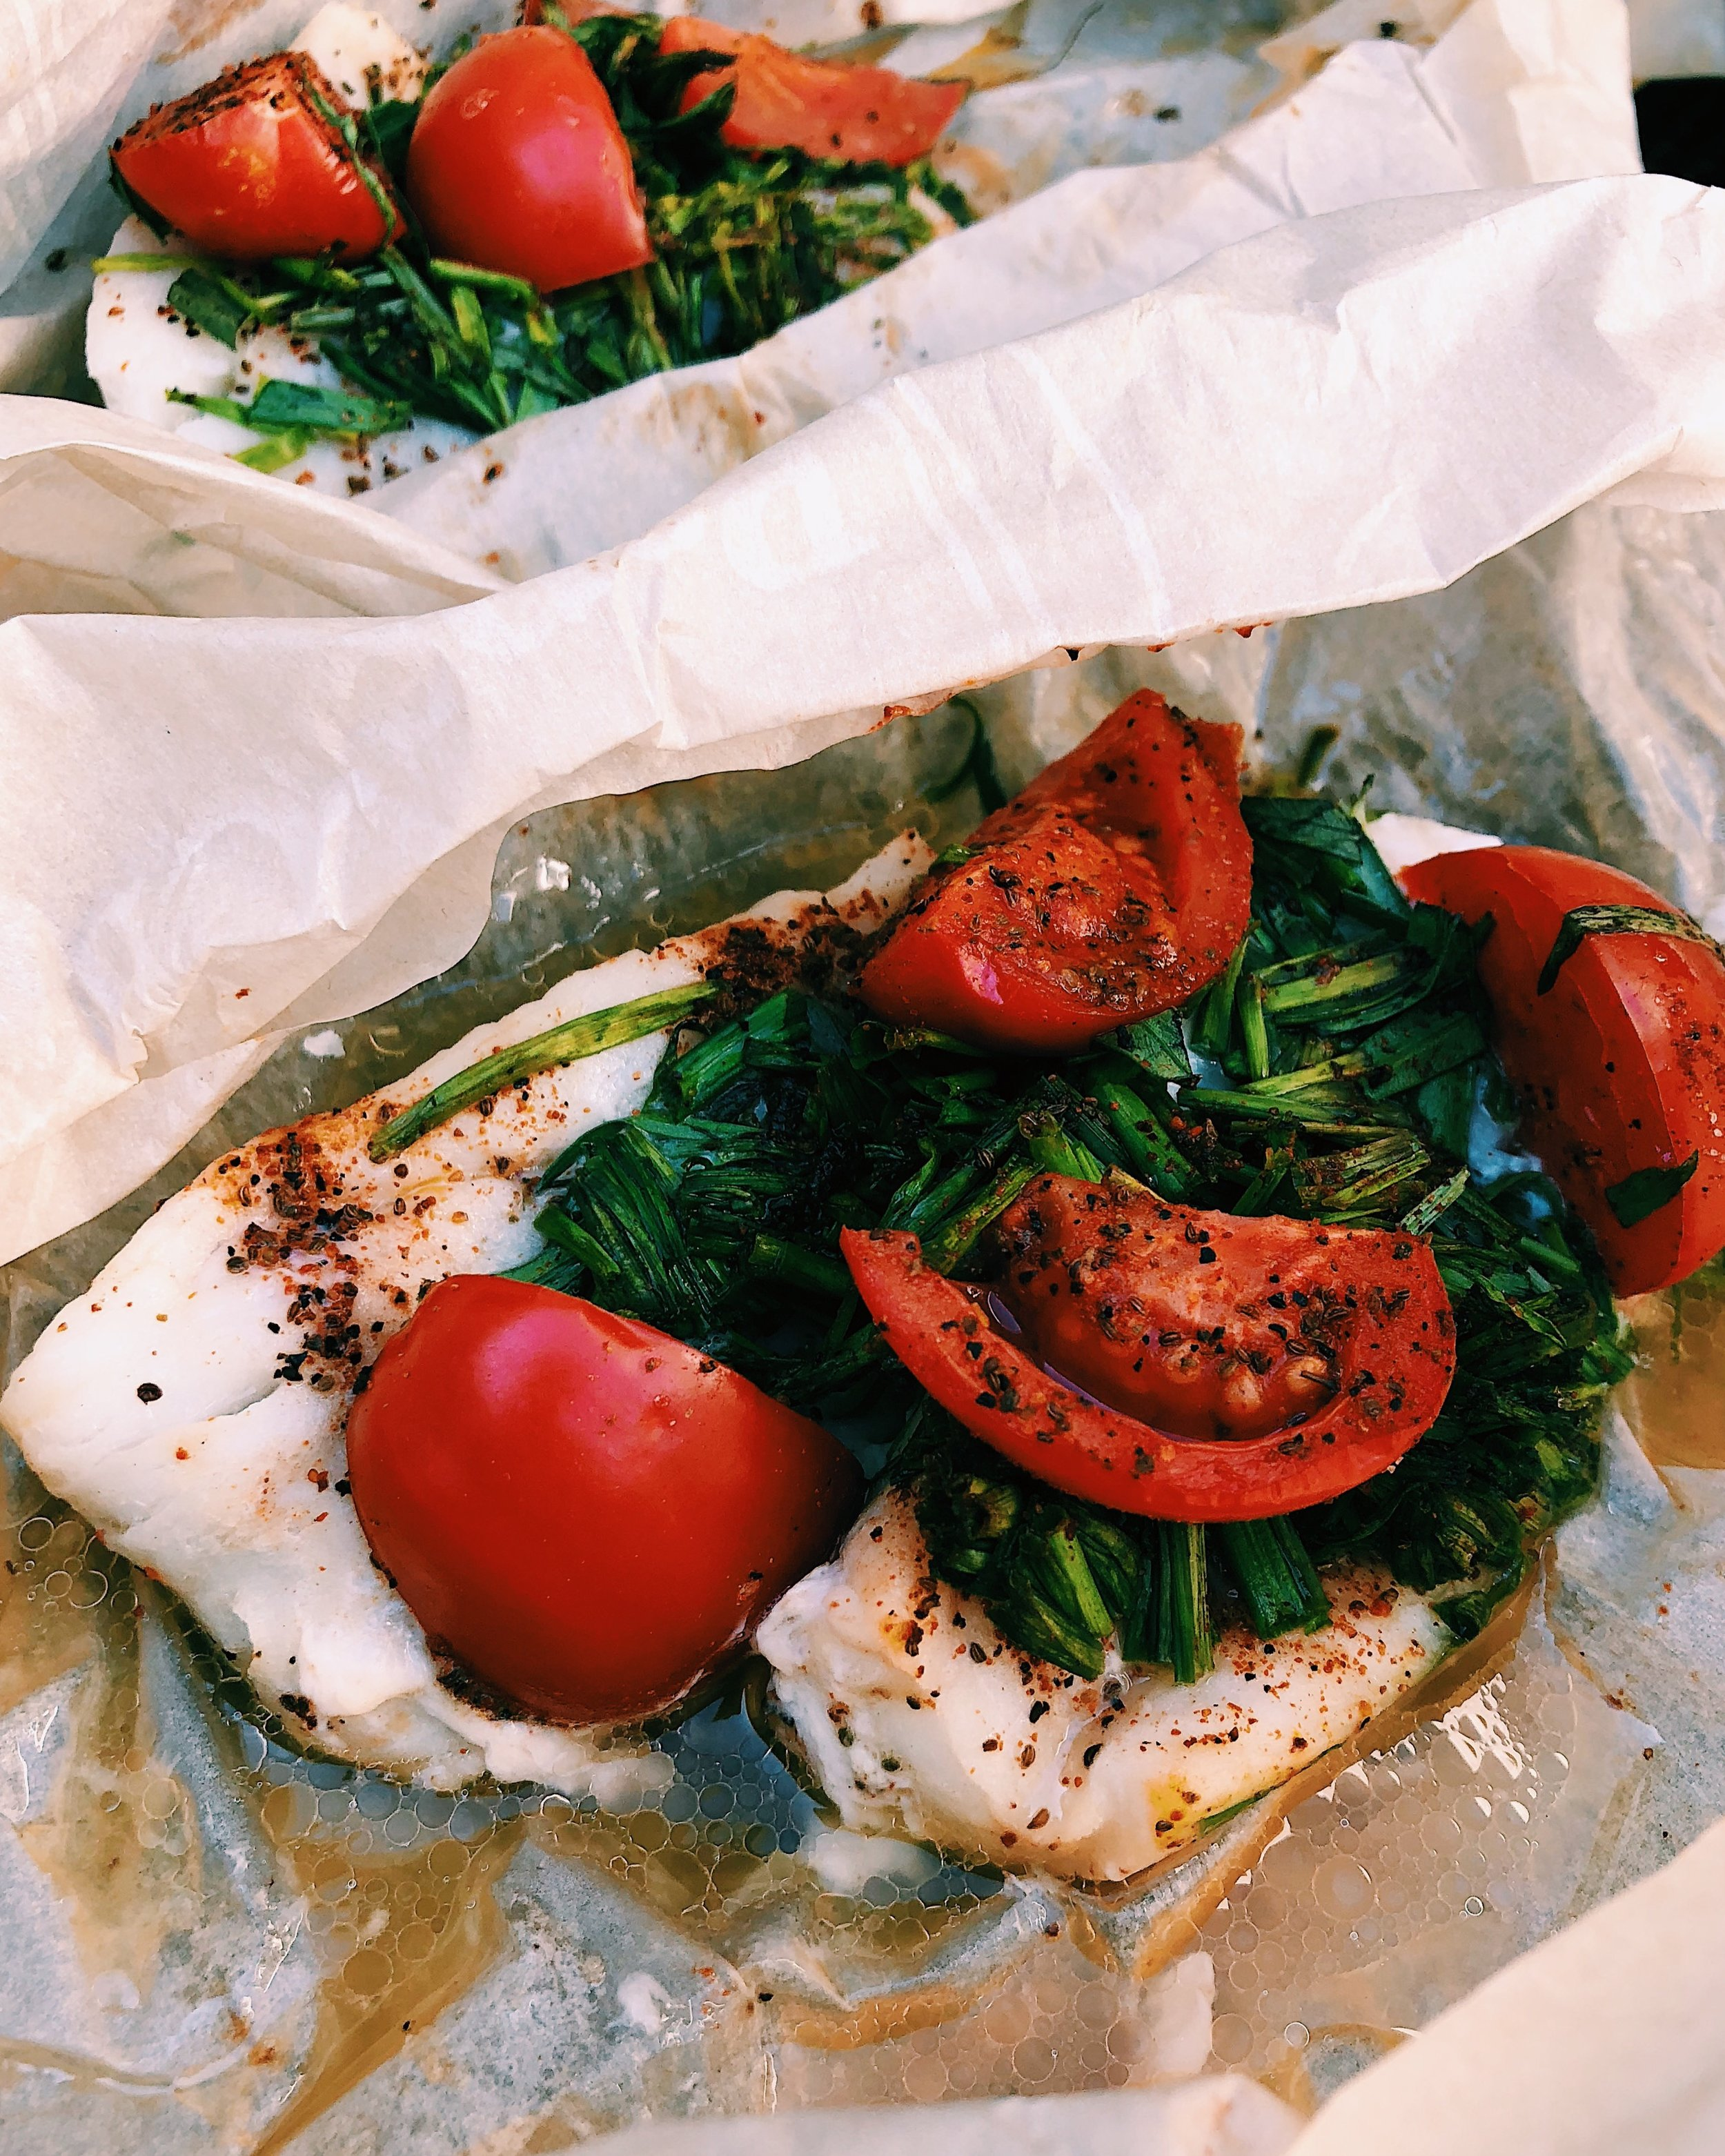 HERBED COD EN PAPPILLOTE - INGREDIENTS2, 4 oz cod filets1/3 cup chopped chives1/4 cup chopped tarragon1/2 cup chopped cherry tomatoes3 tb Brummel & Brown organic buttery yogurt spreadSalt & pepper to tasteTwo large pieces parchment paper, to wrap fish